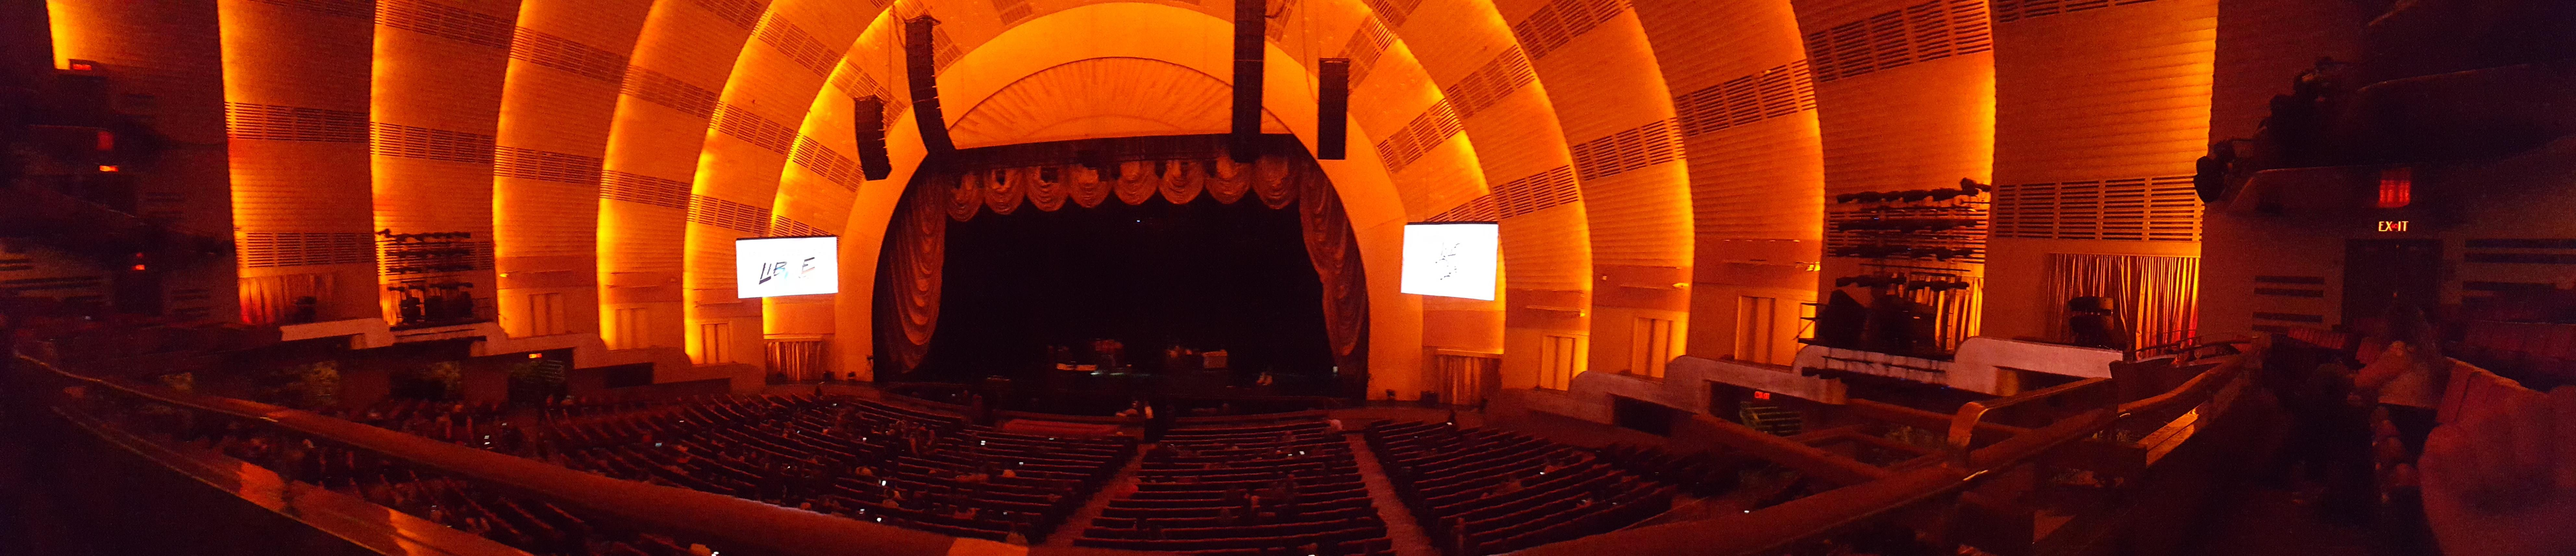 Radio City Music Hall Section 1st mezzanine 3 Row A Seat 303